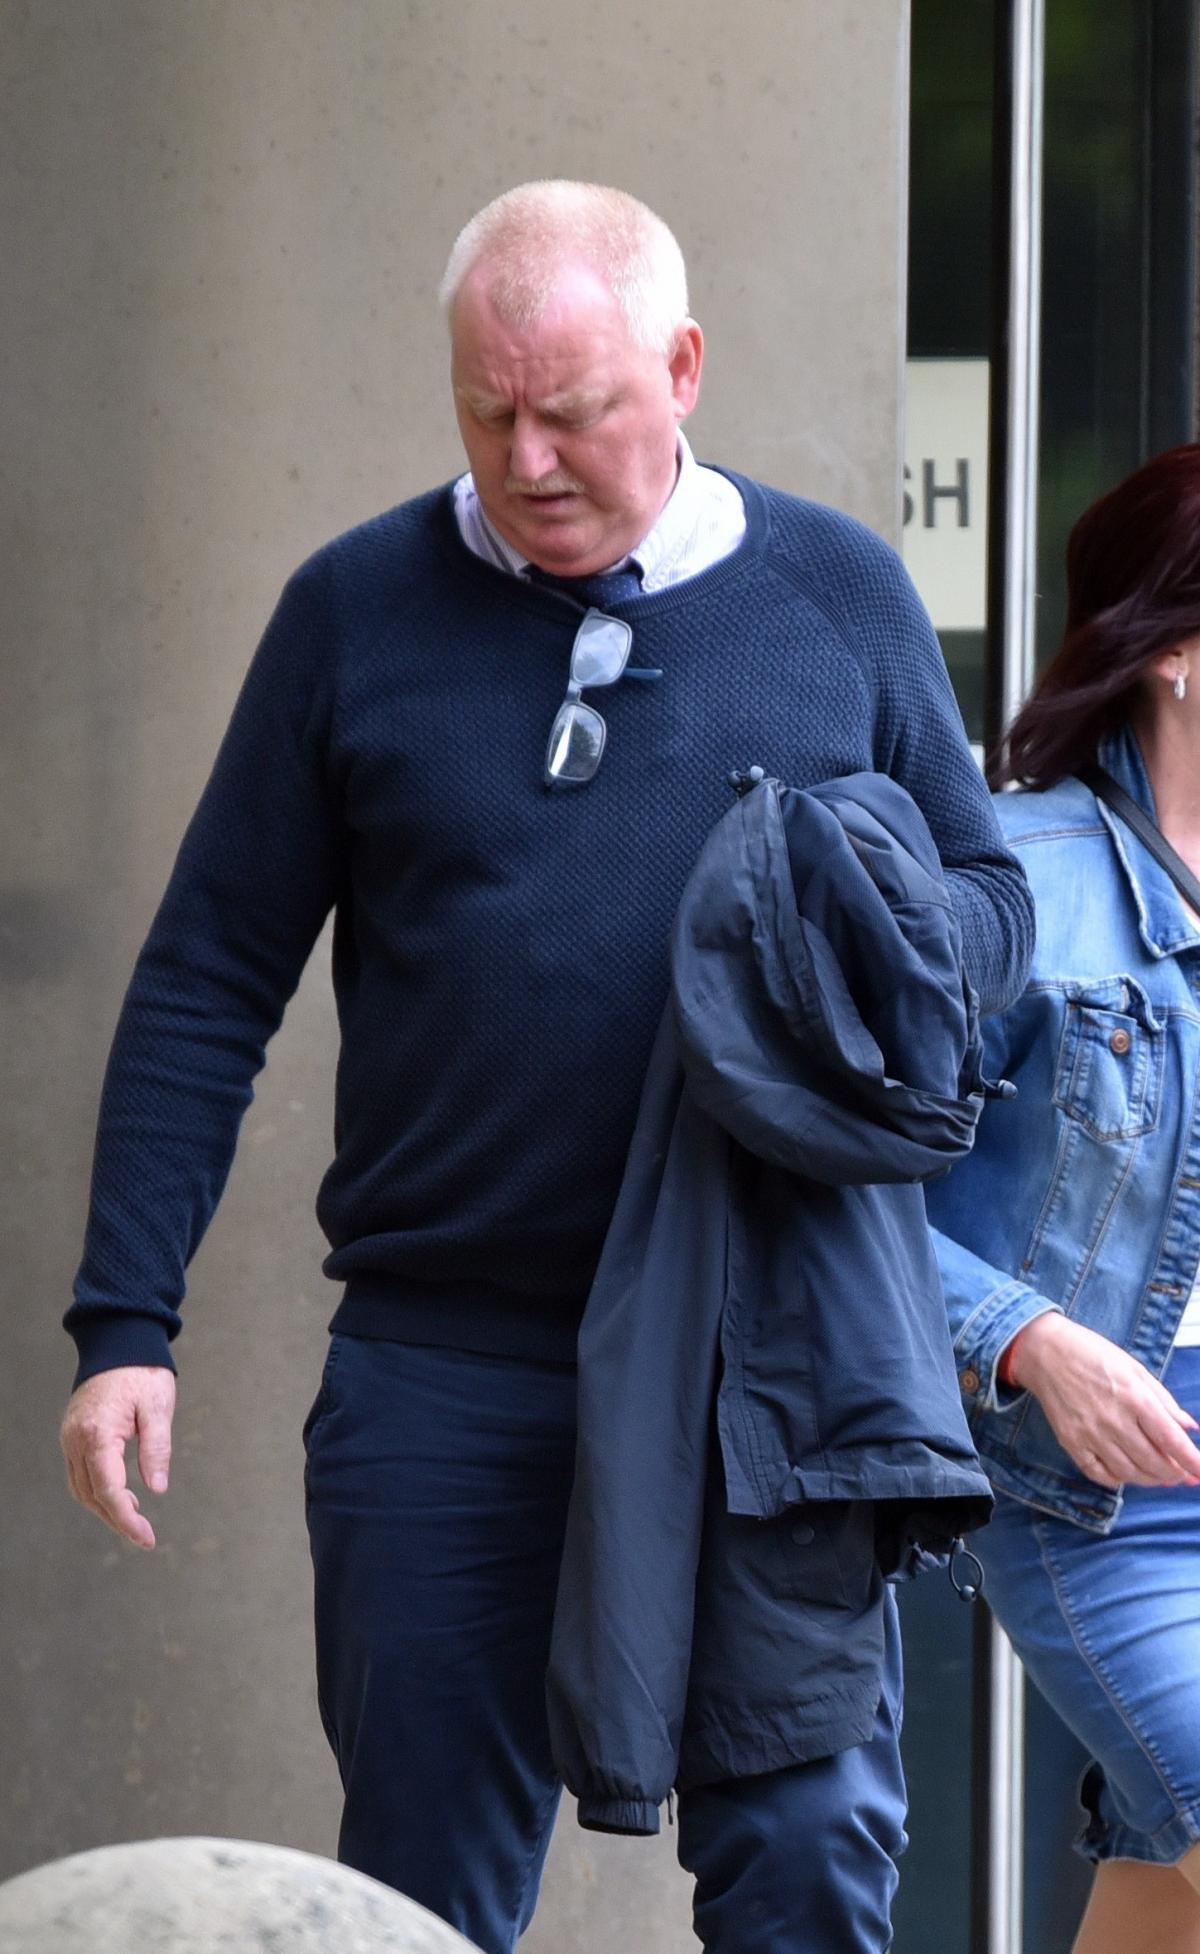 Couple could be ordered to pay back over £34,000 of their ill-gotten gains